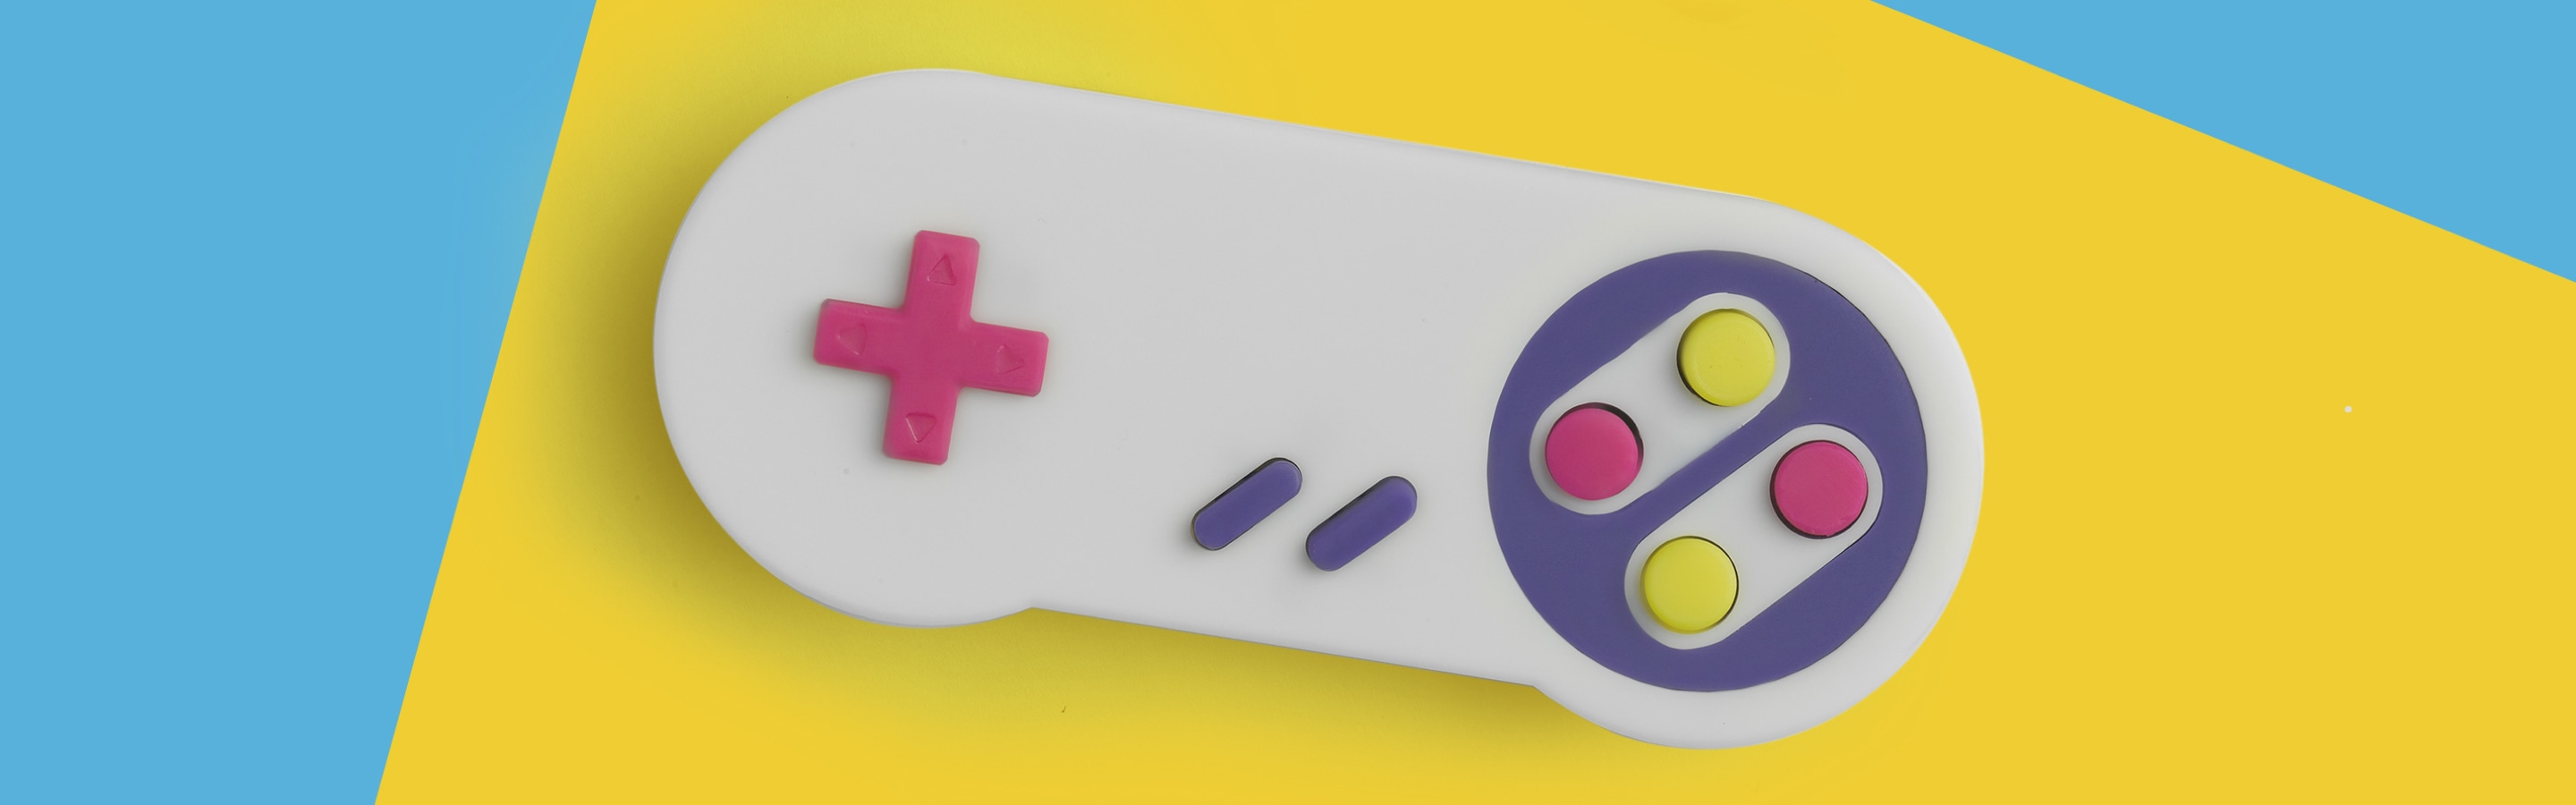 colors-controller-header